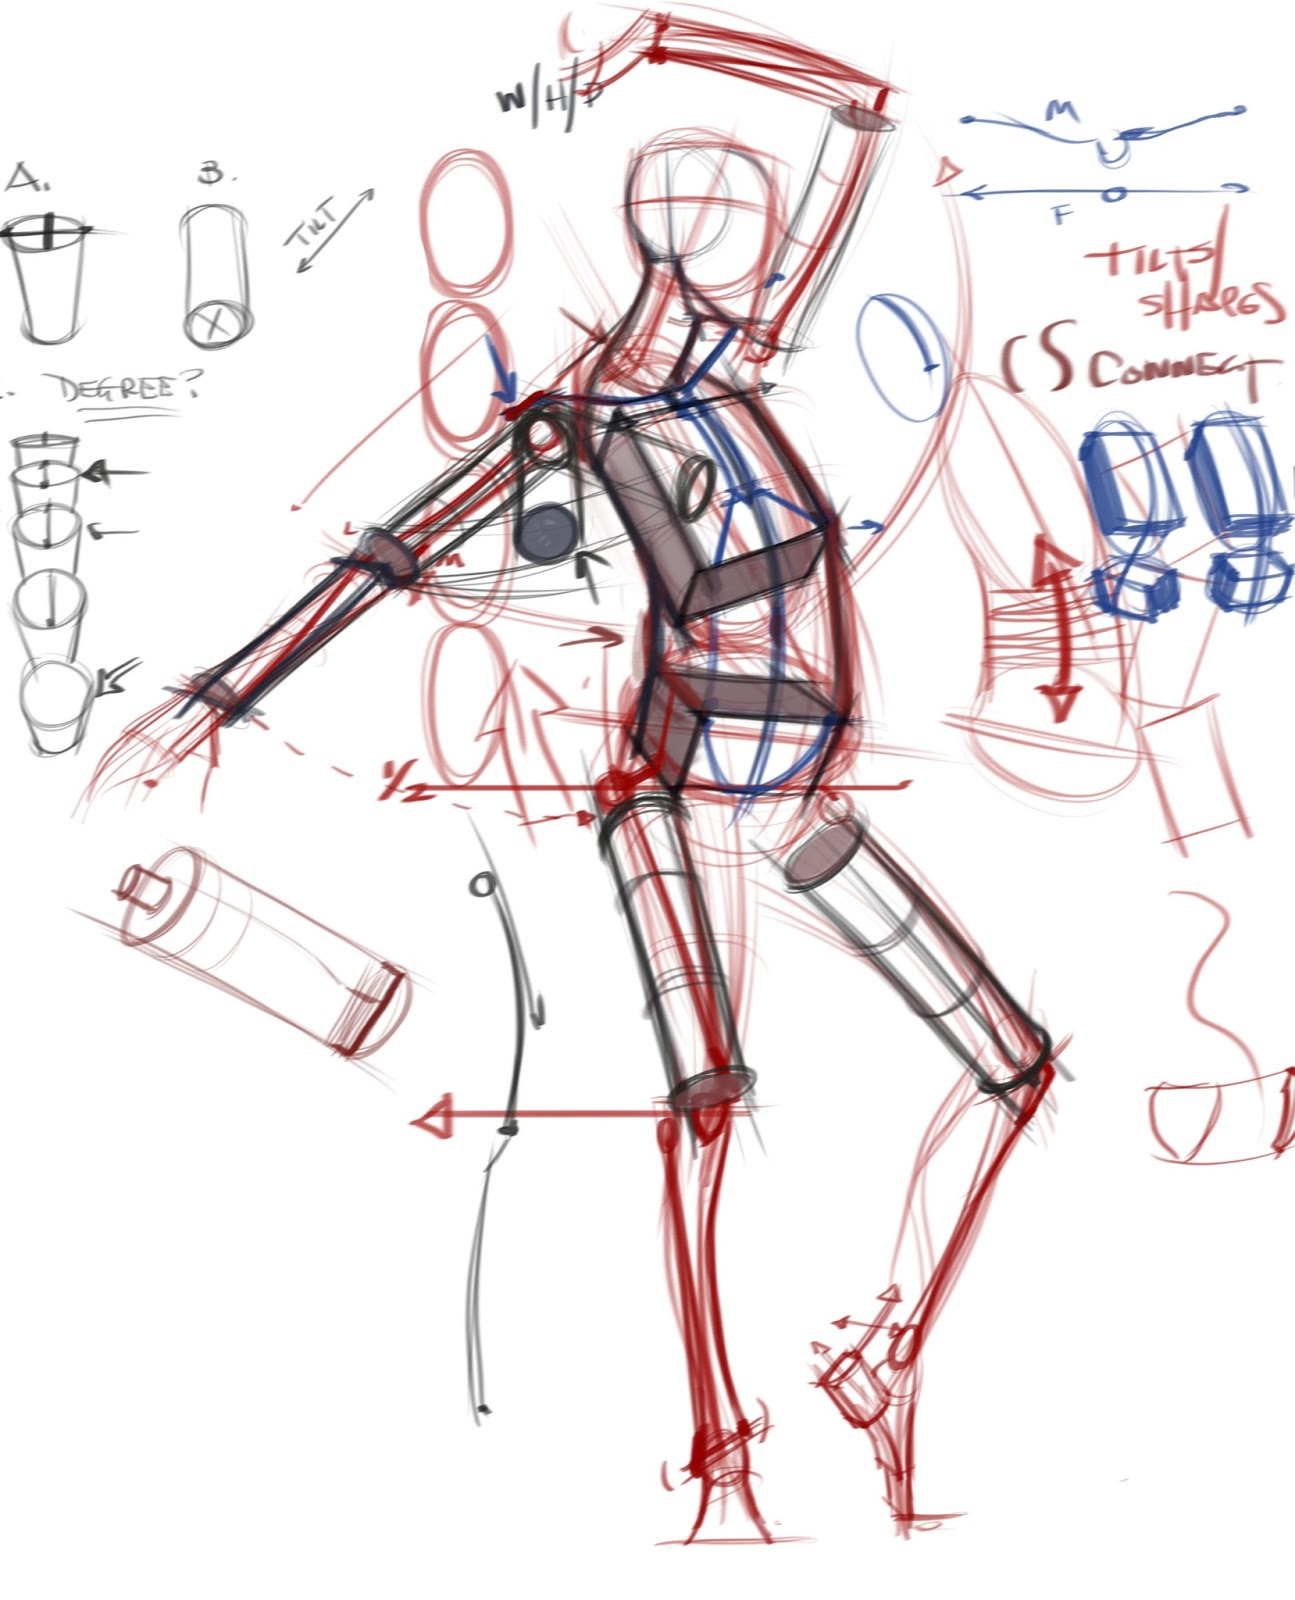 figuredrawing.info news: Interview with The Concept Art Blog